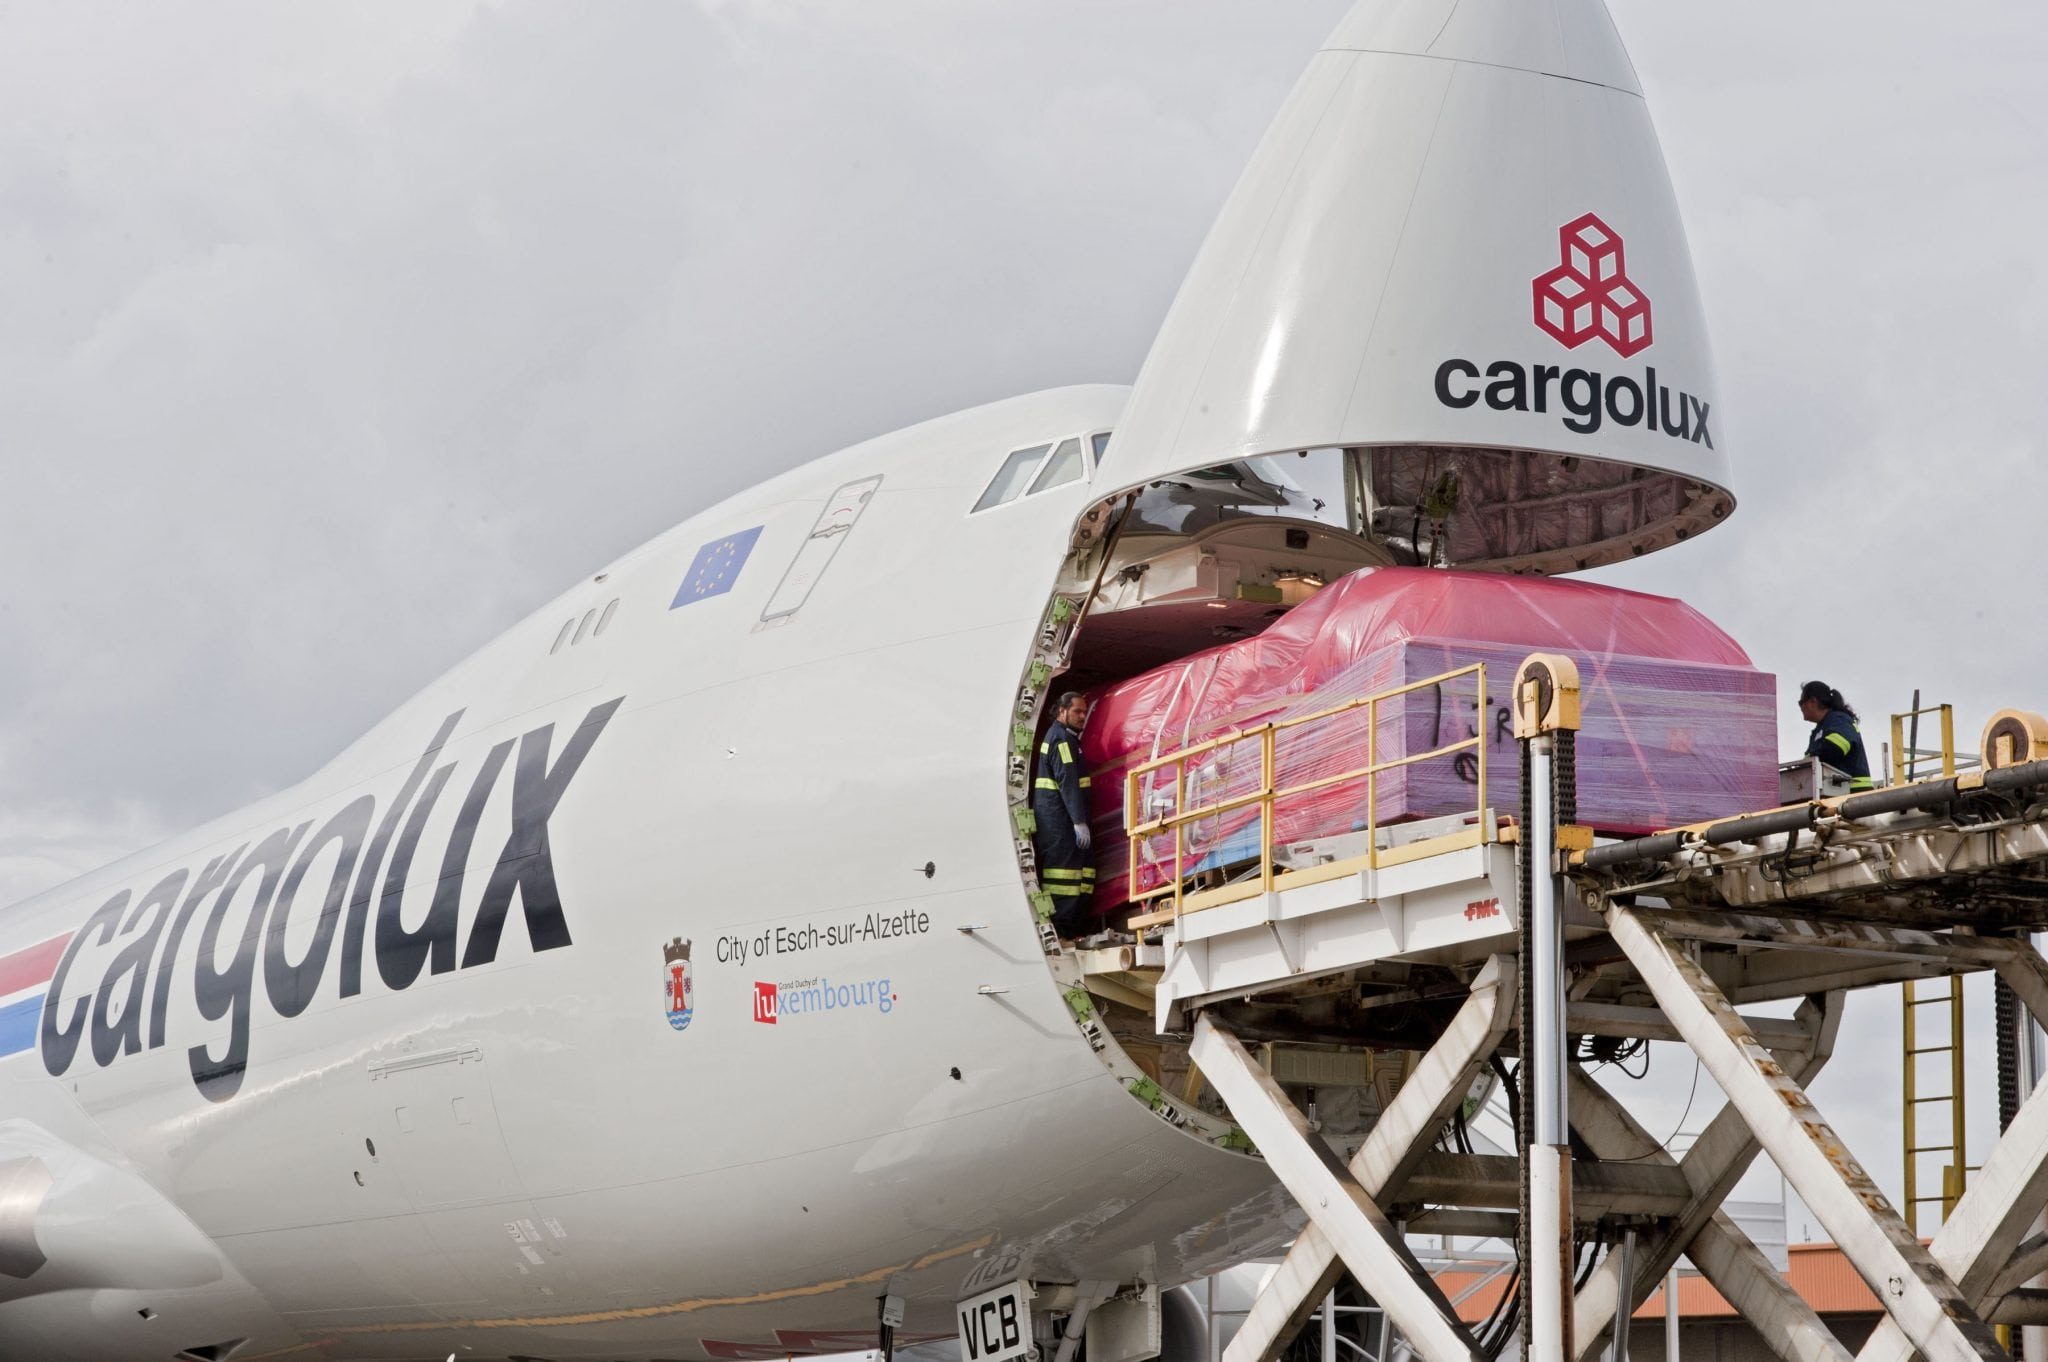 Boeing 747-8 aircraft being loaded with cargo